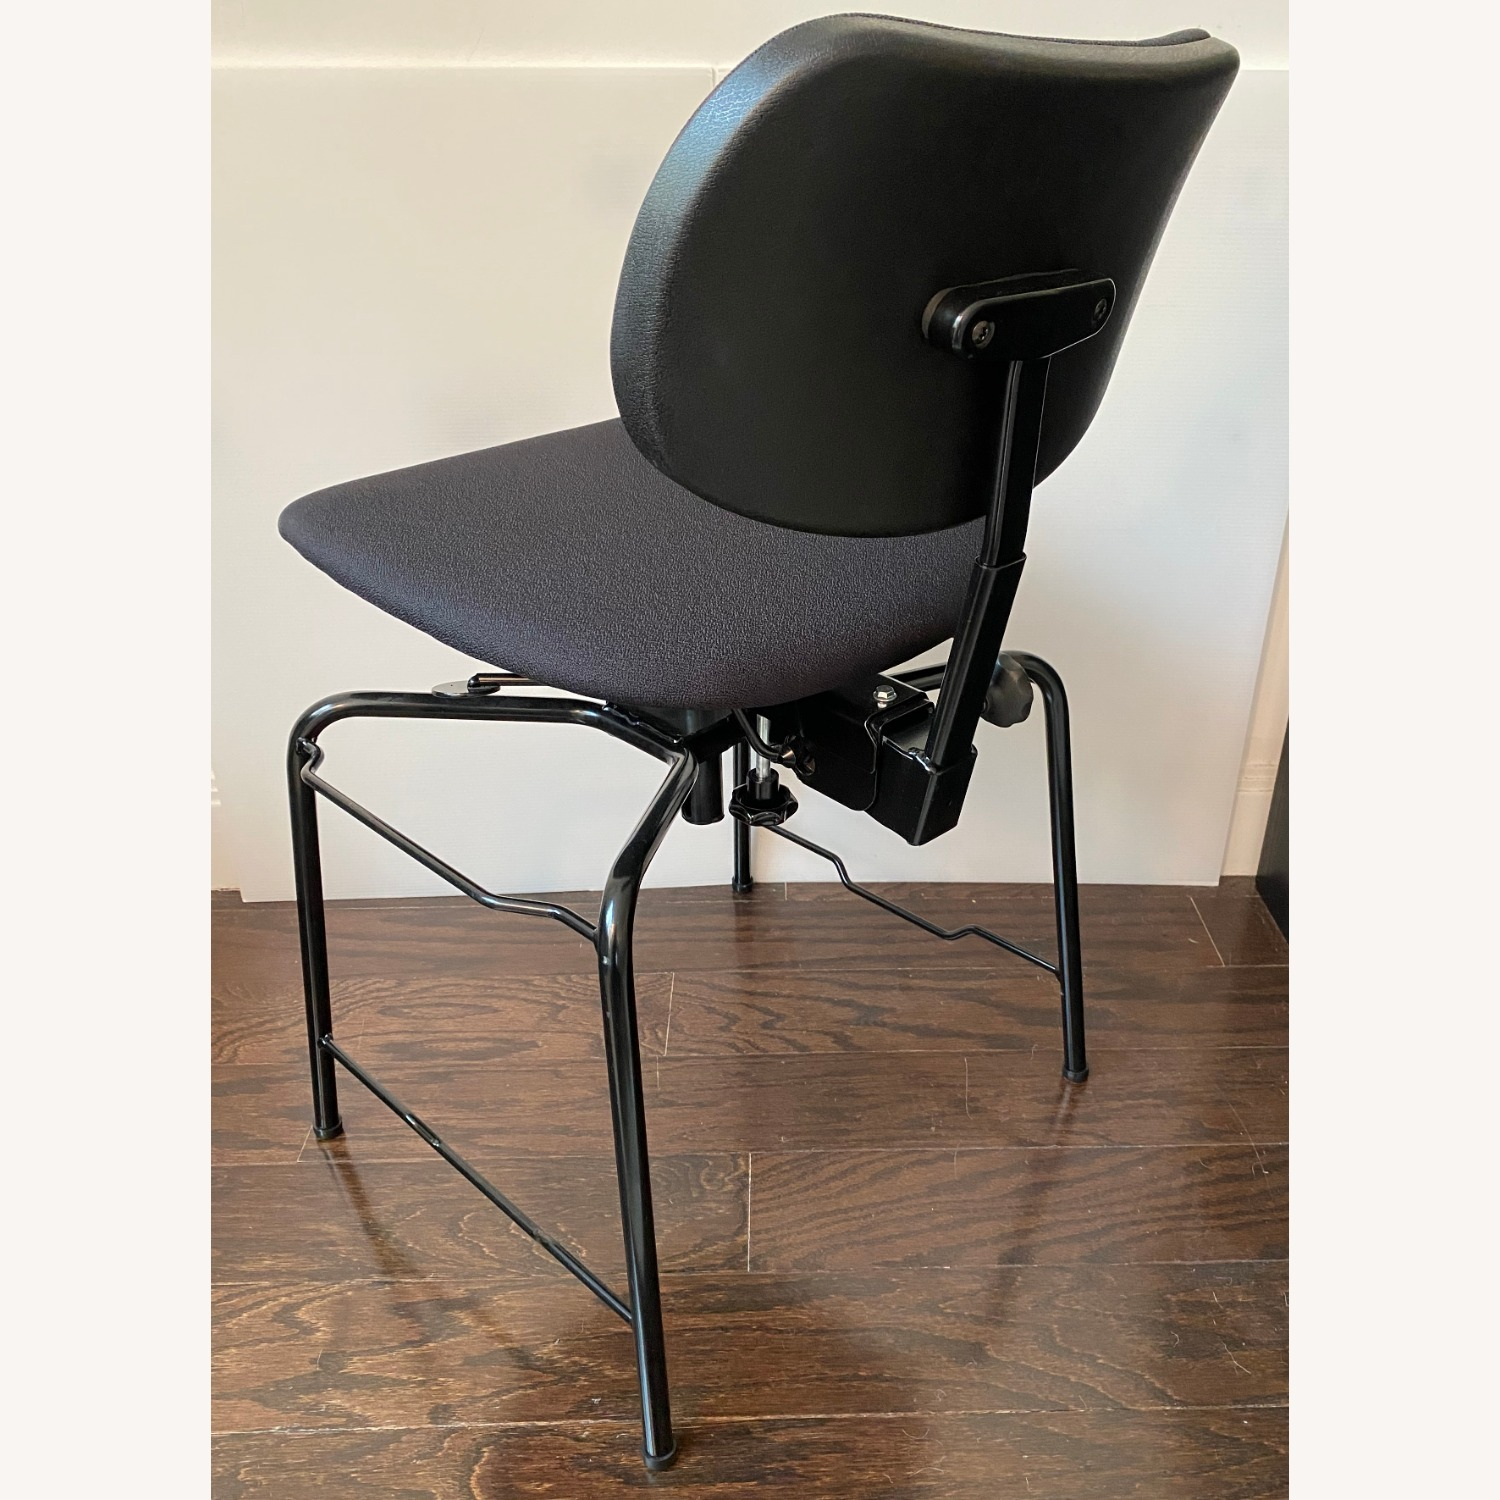 "Wilde + Spieth ""Orchestra"" Chair Black - image-19"